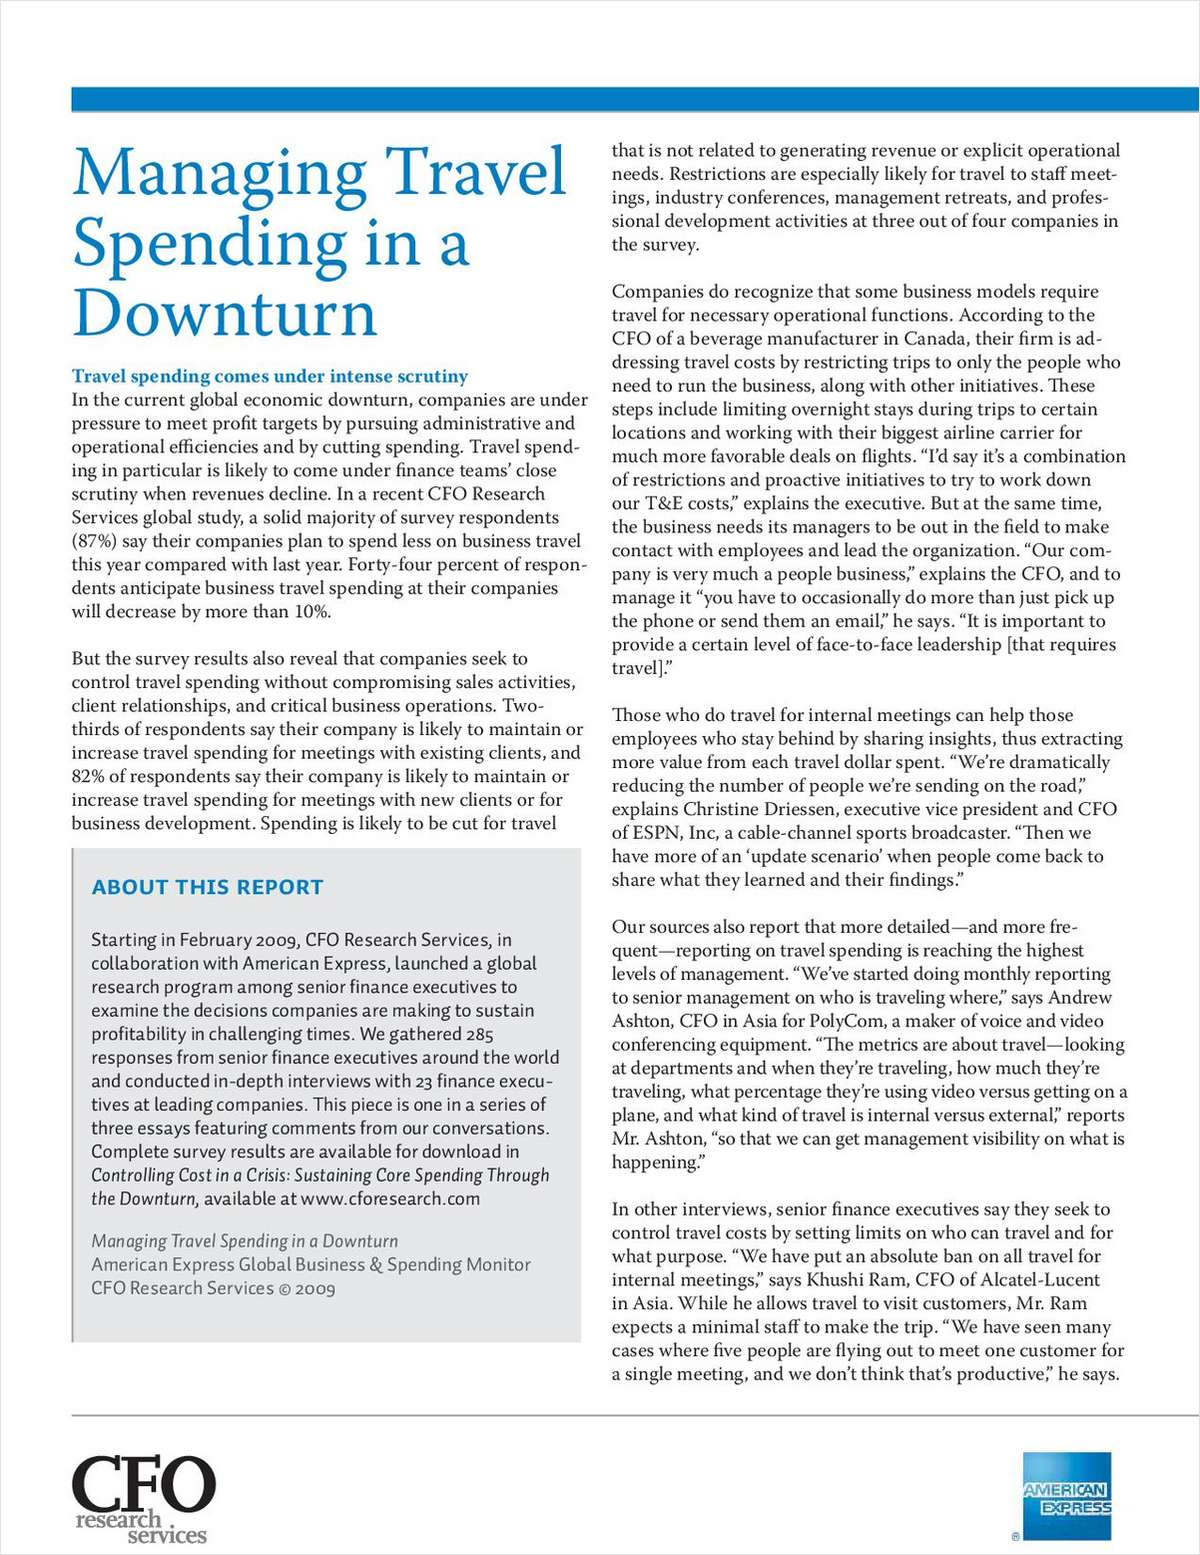 Managing Travel Spending in a Downturn